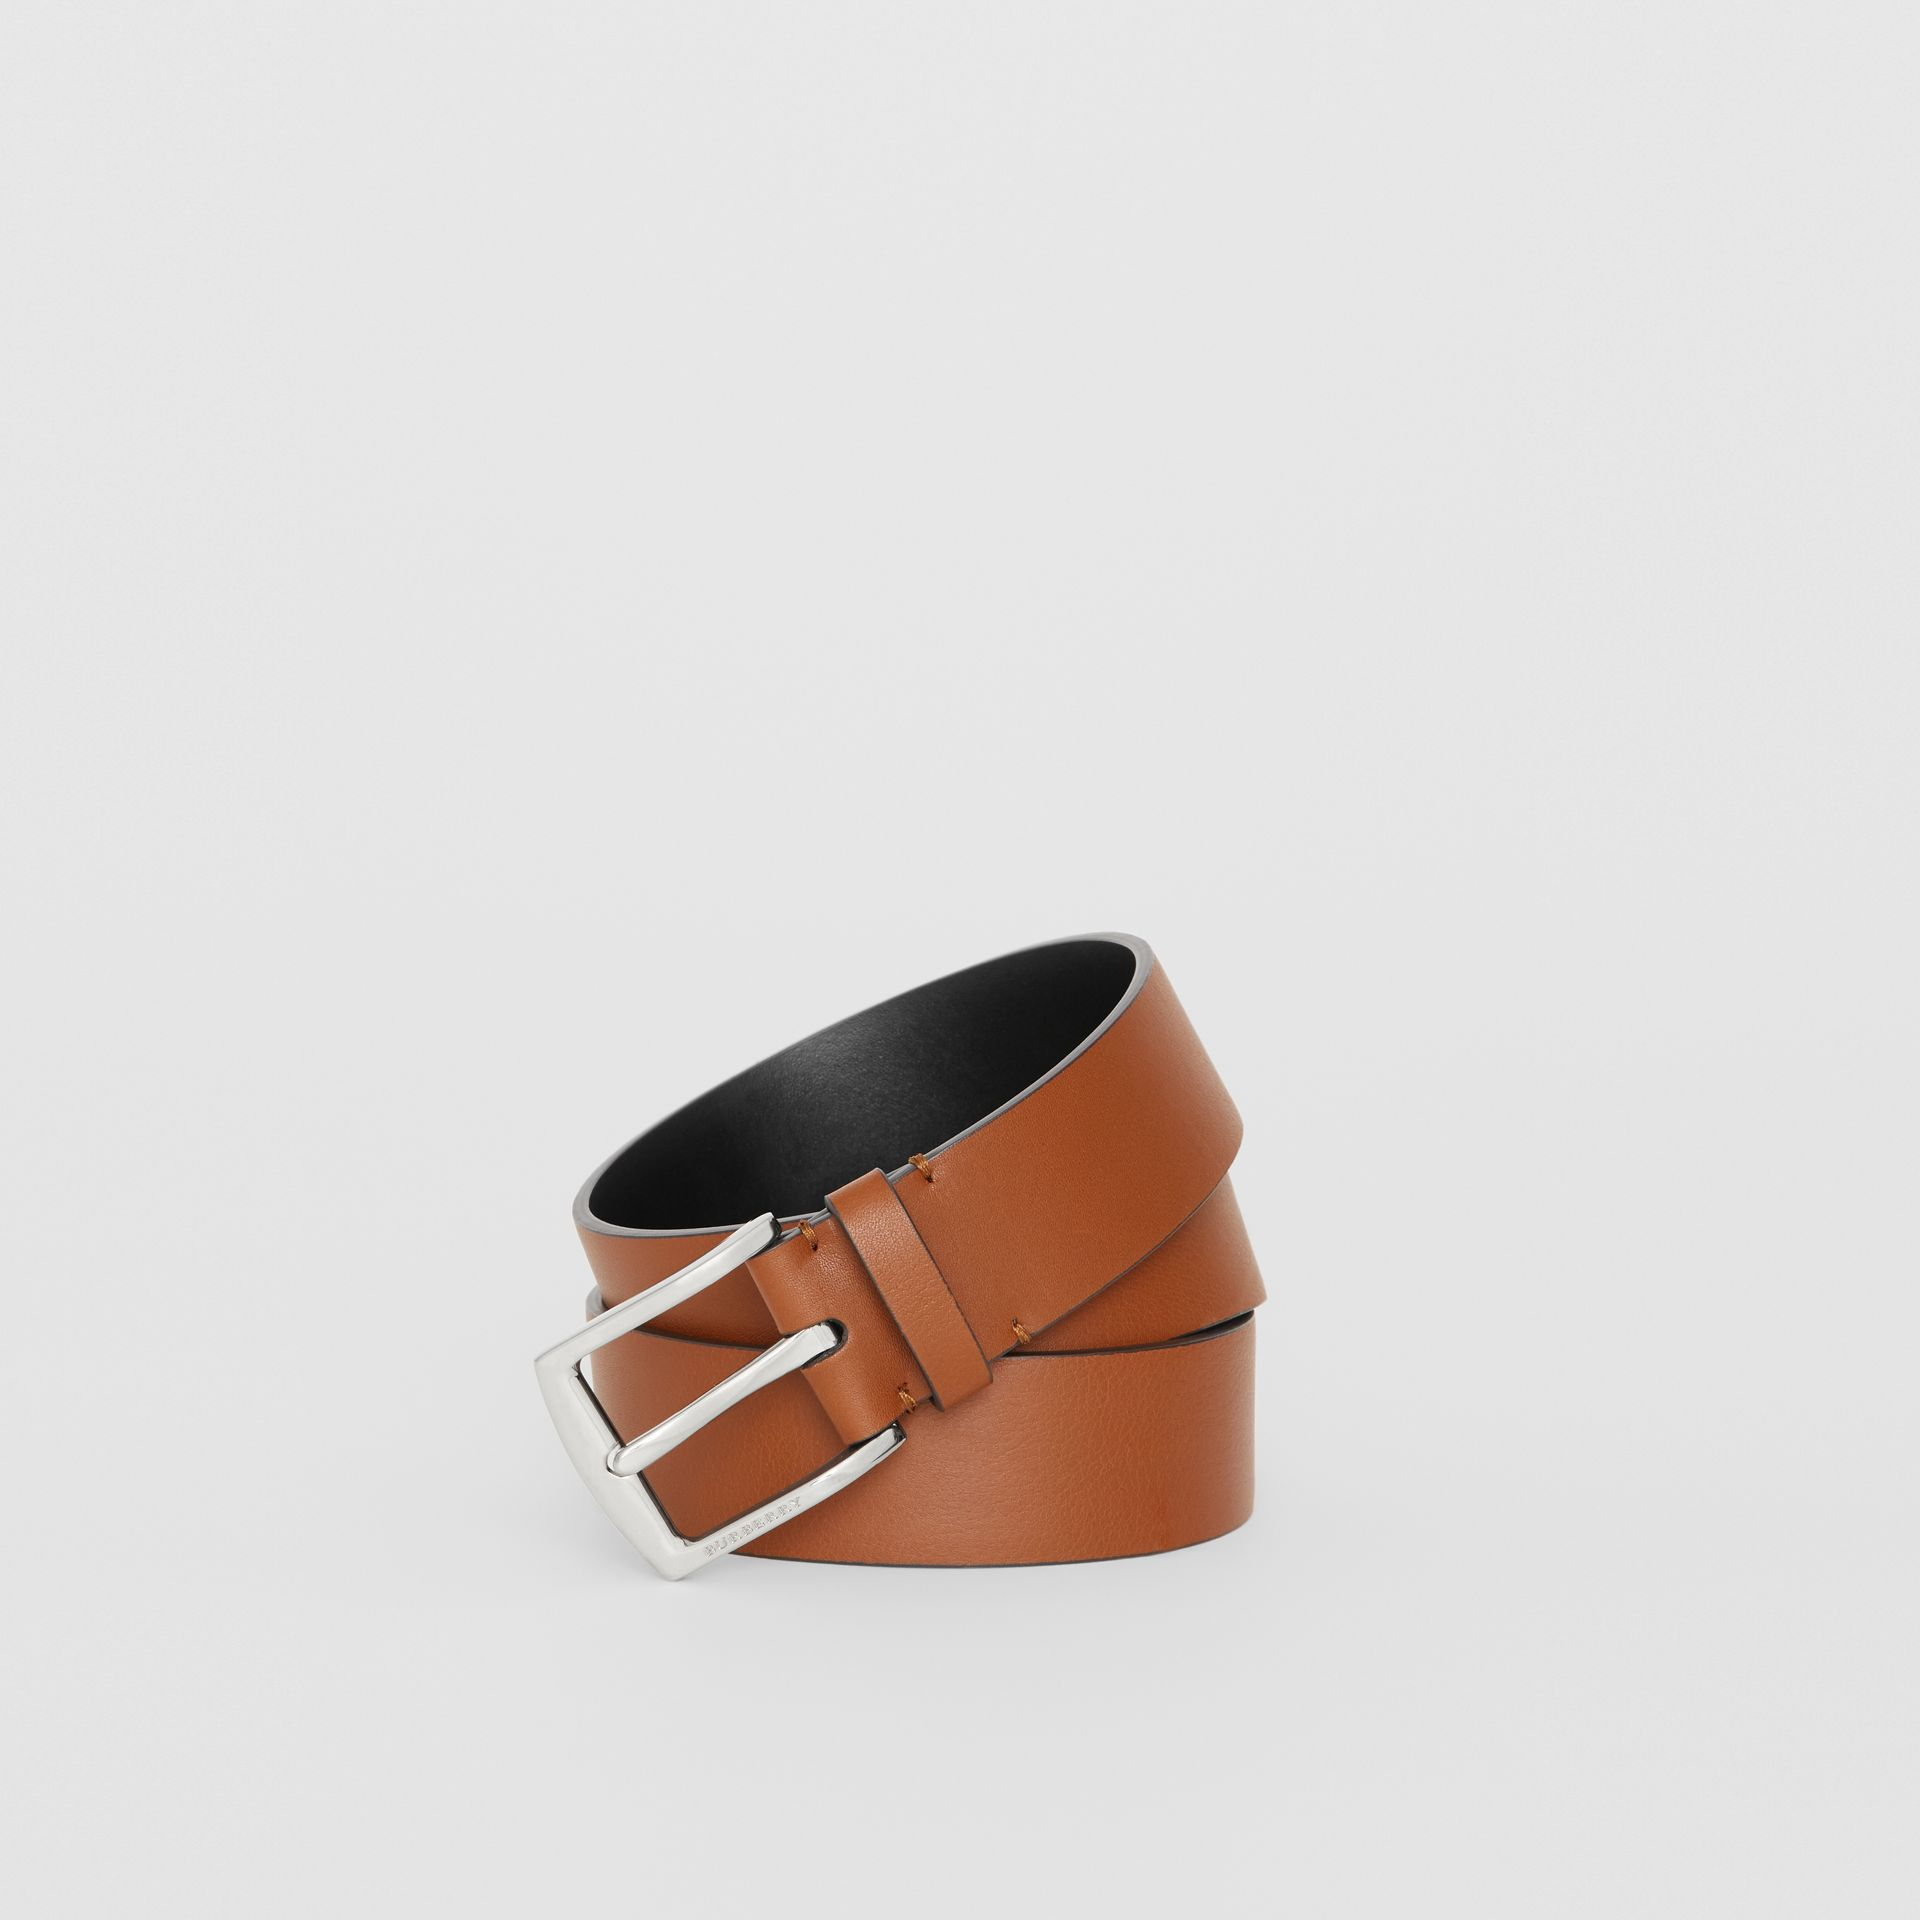 Embossed Crest Leather Belt in Chestnut Brown - Men | Burberry United States - gallery image 0